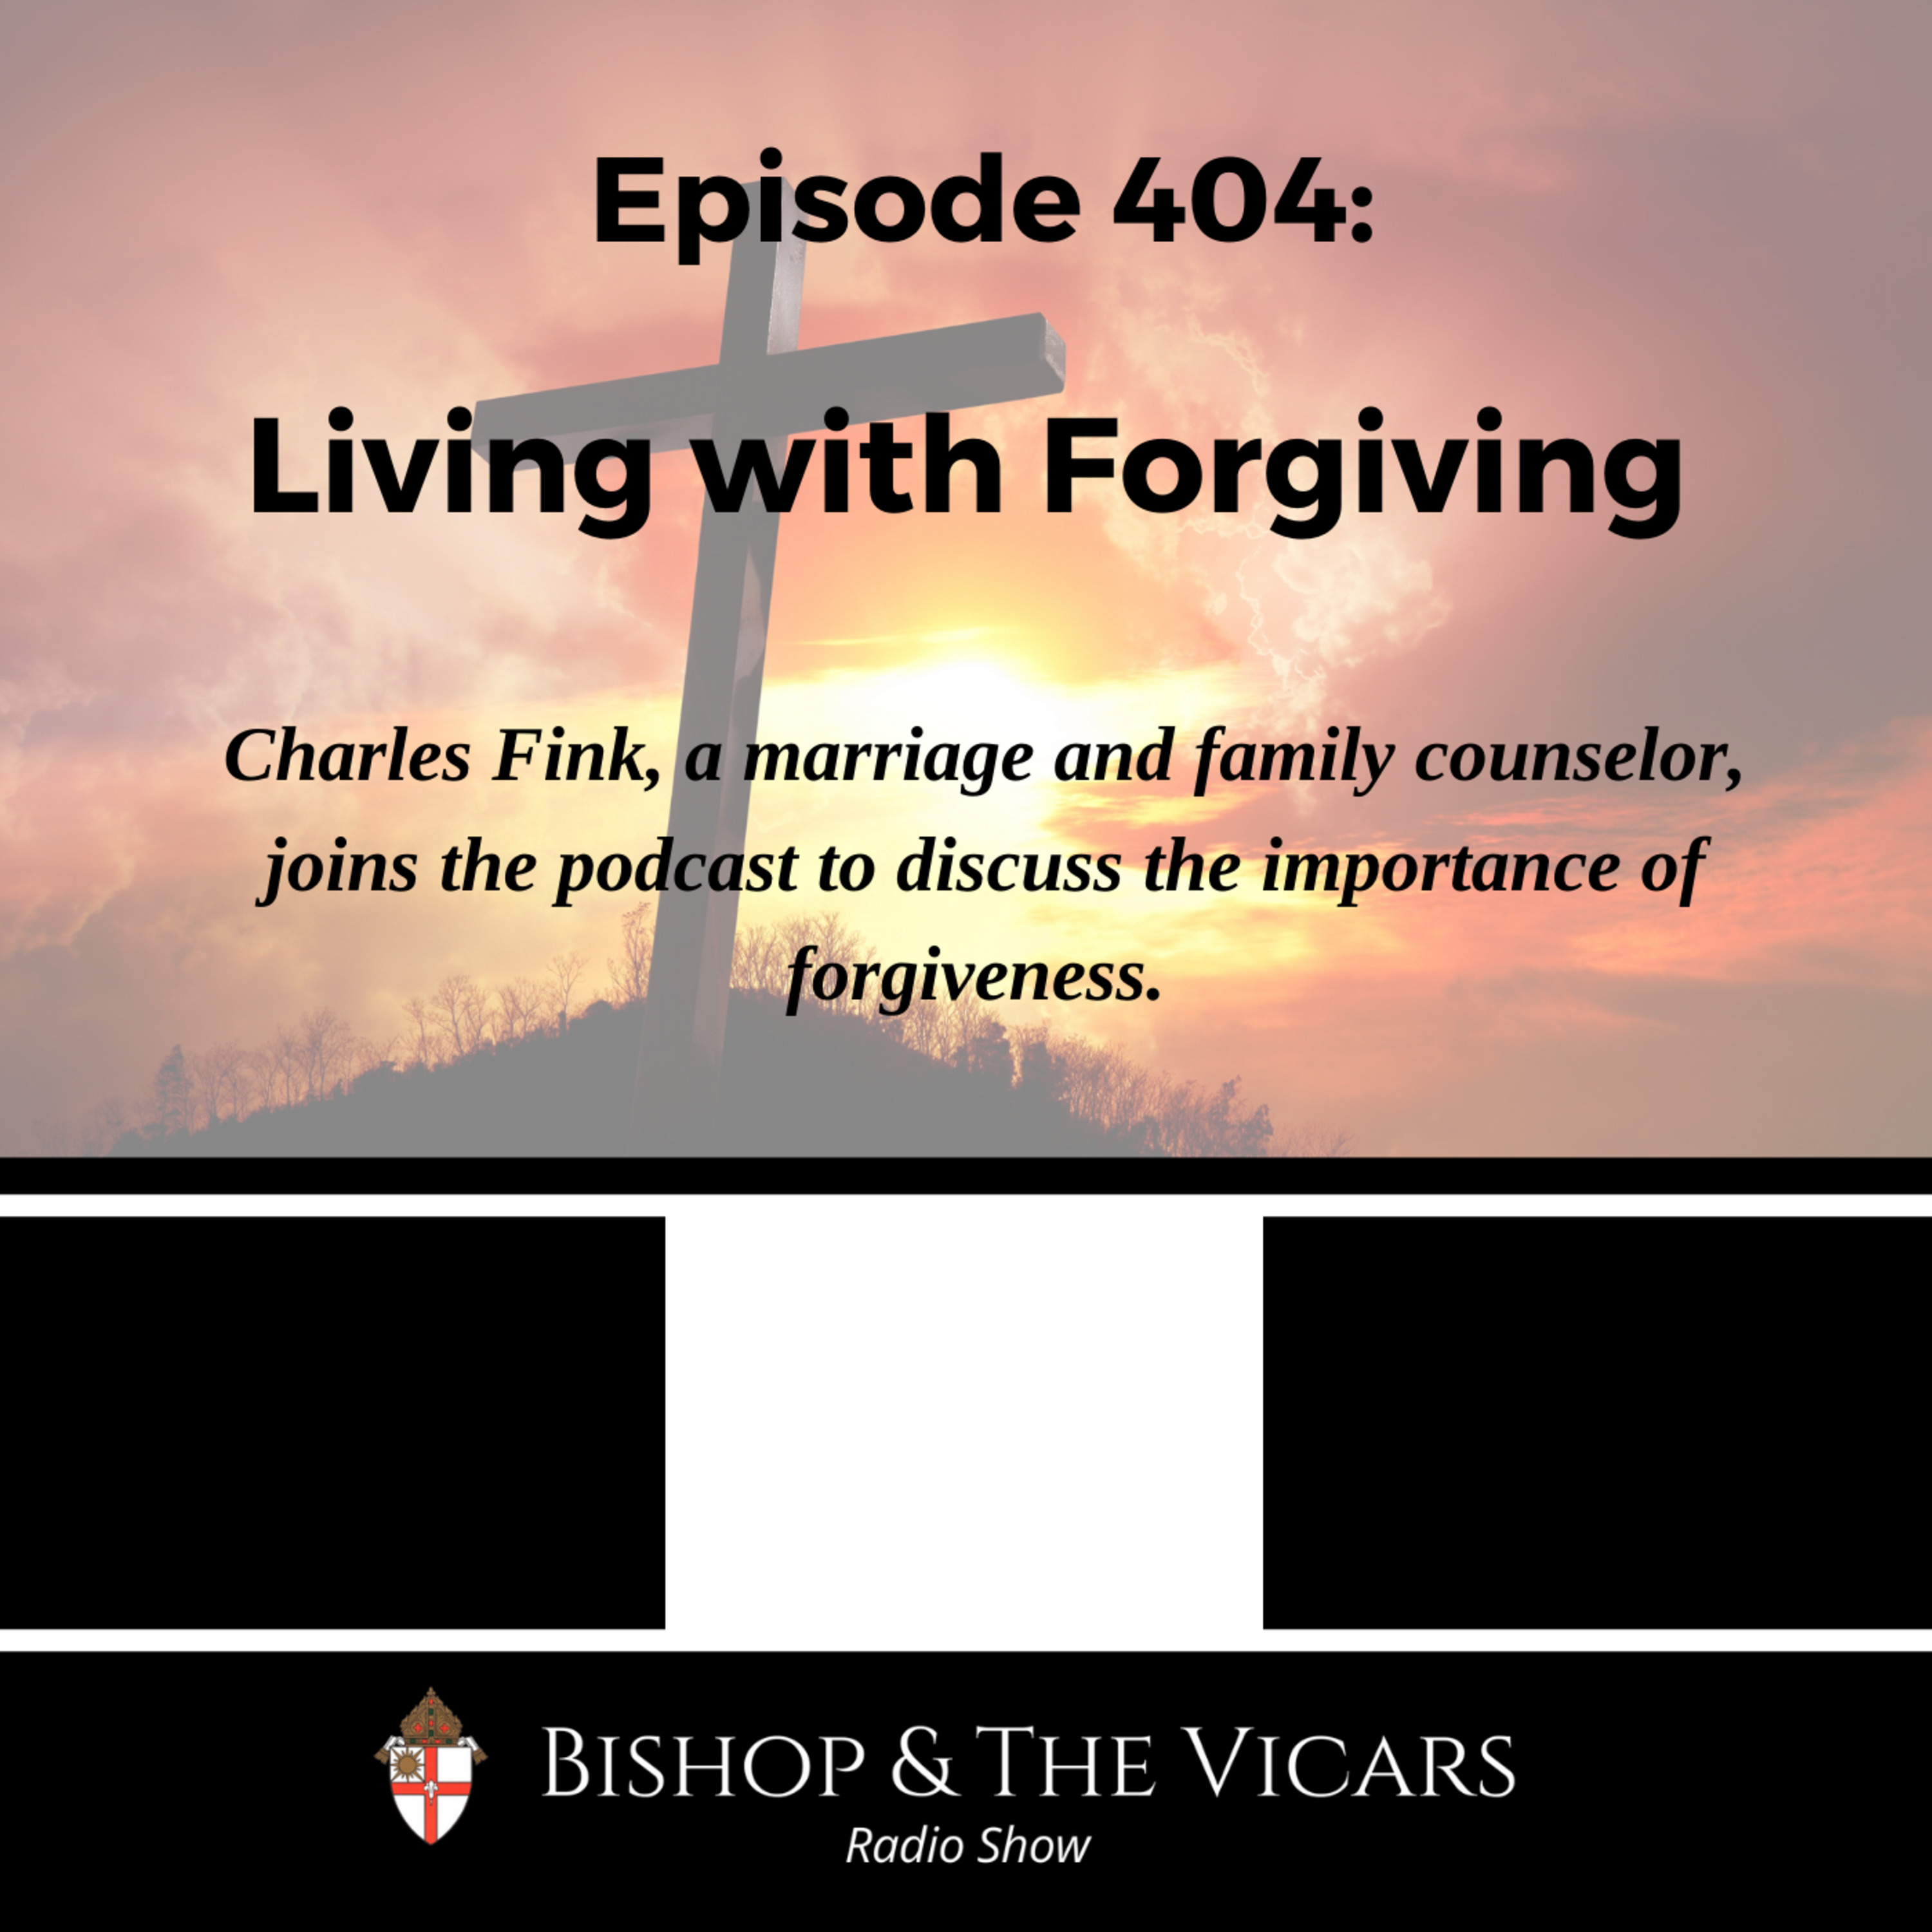 404: Living with Forgiving